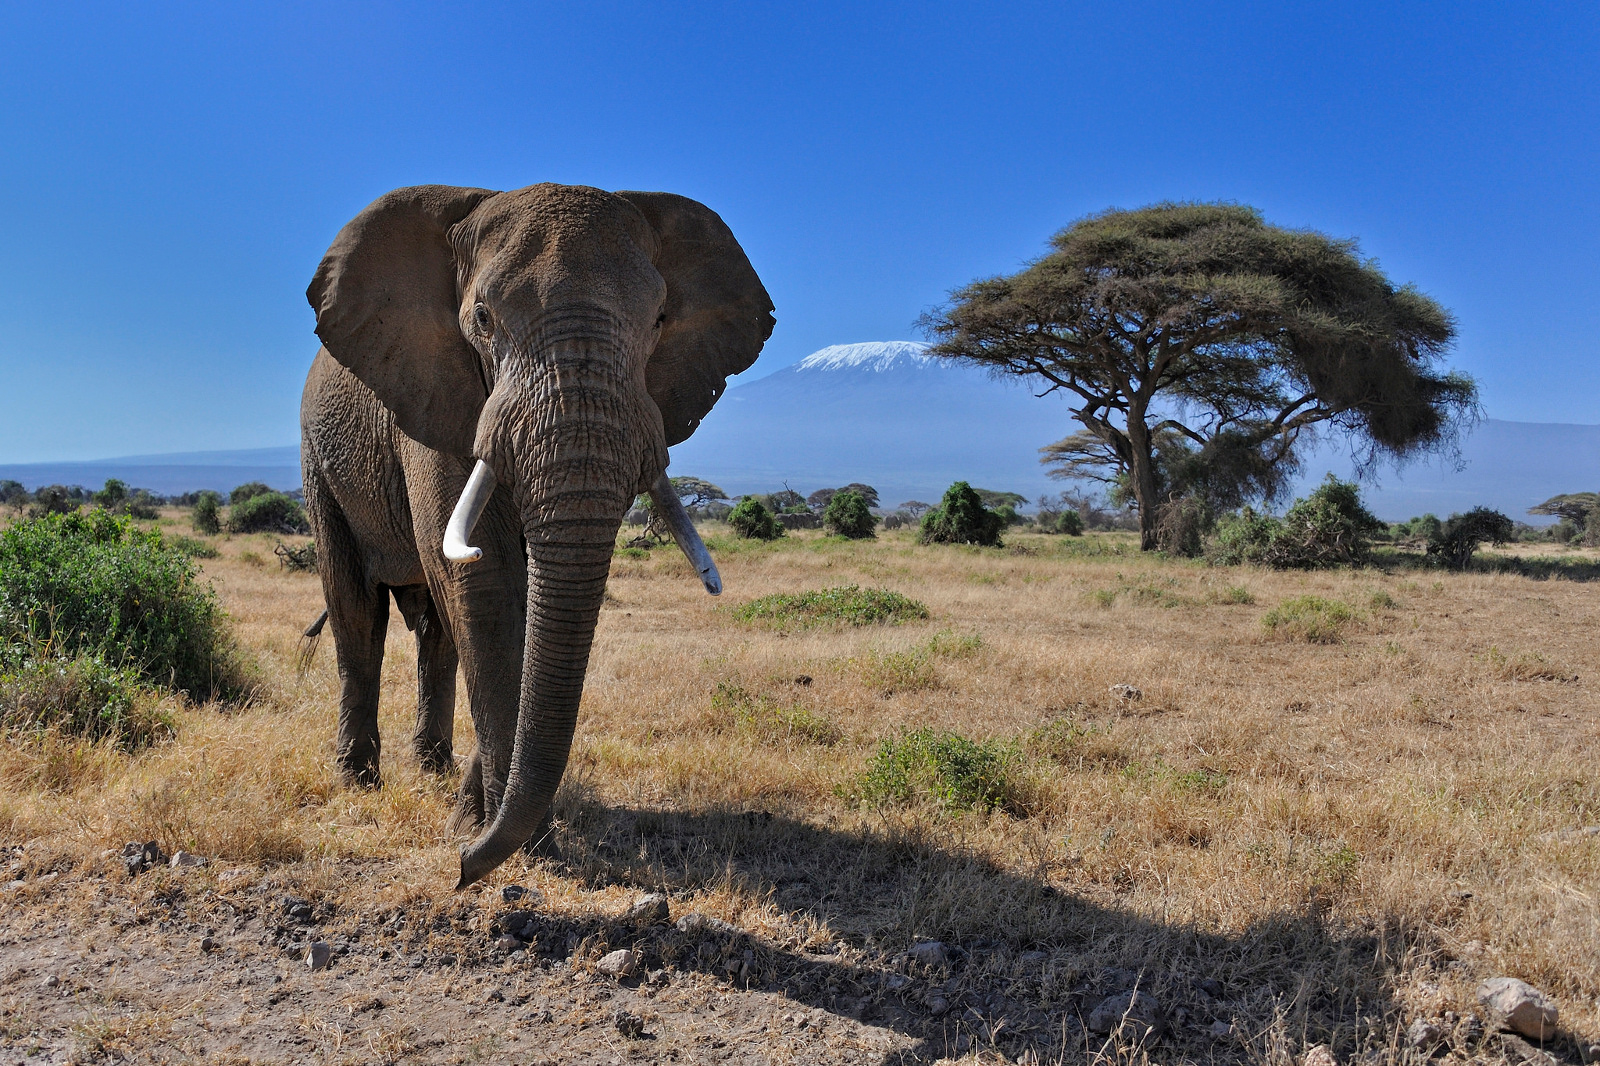 Corruption in the Congolese Government is Driving the Extinction of Elephants